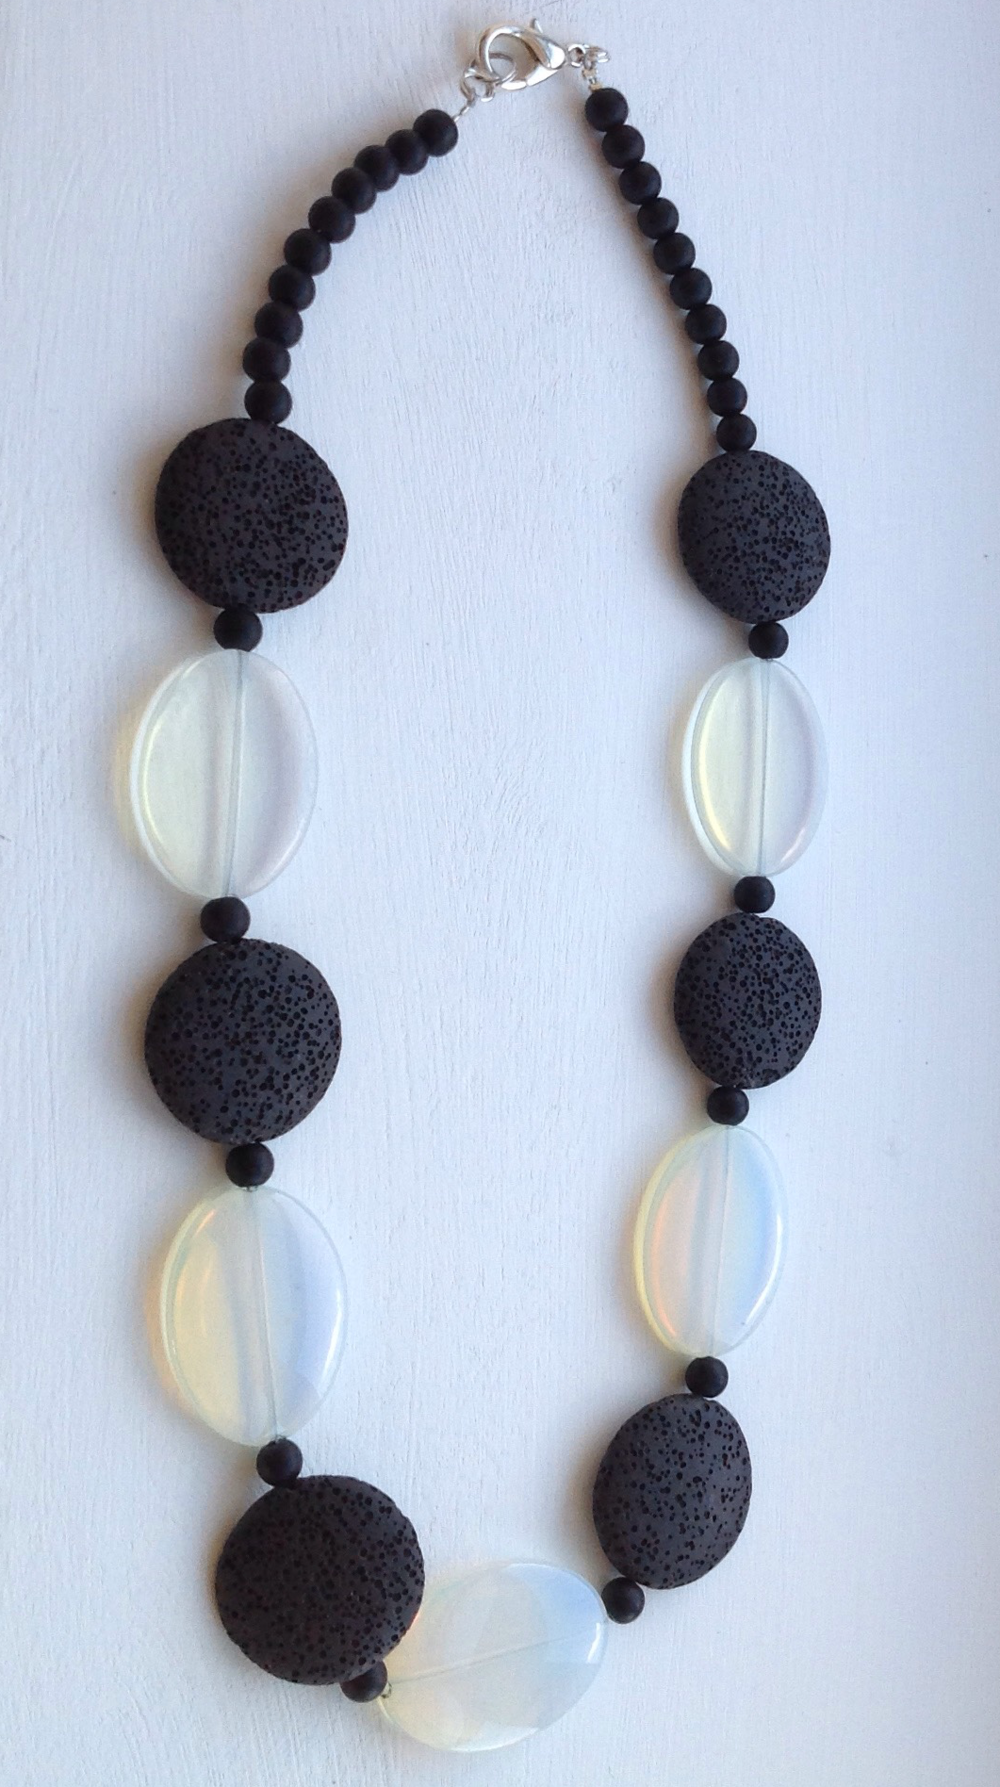 Linda McFarlane, Pyrite and lava necklace